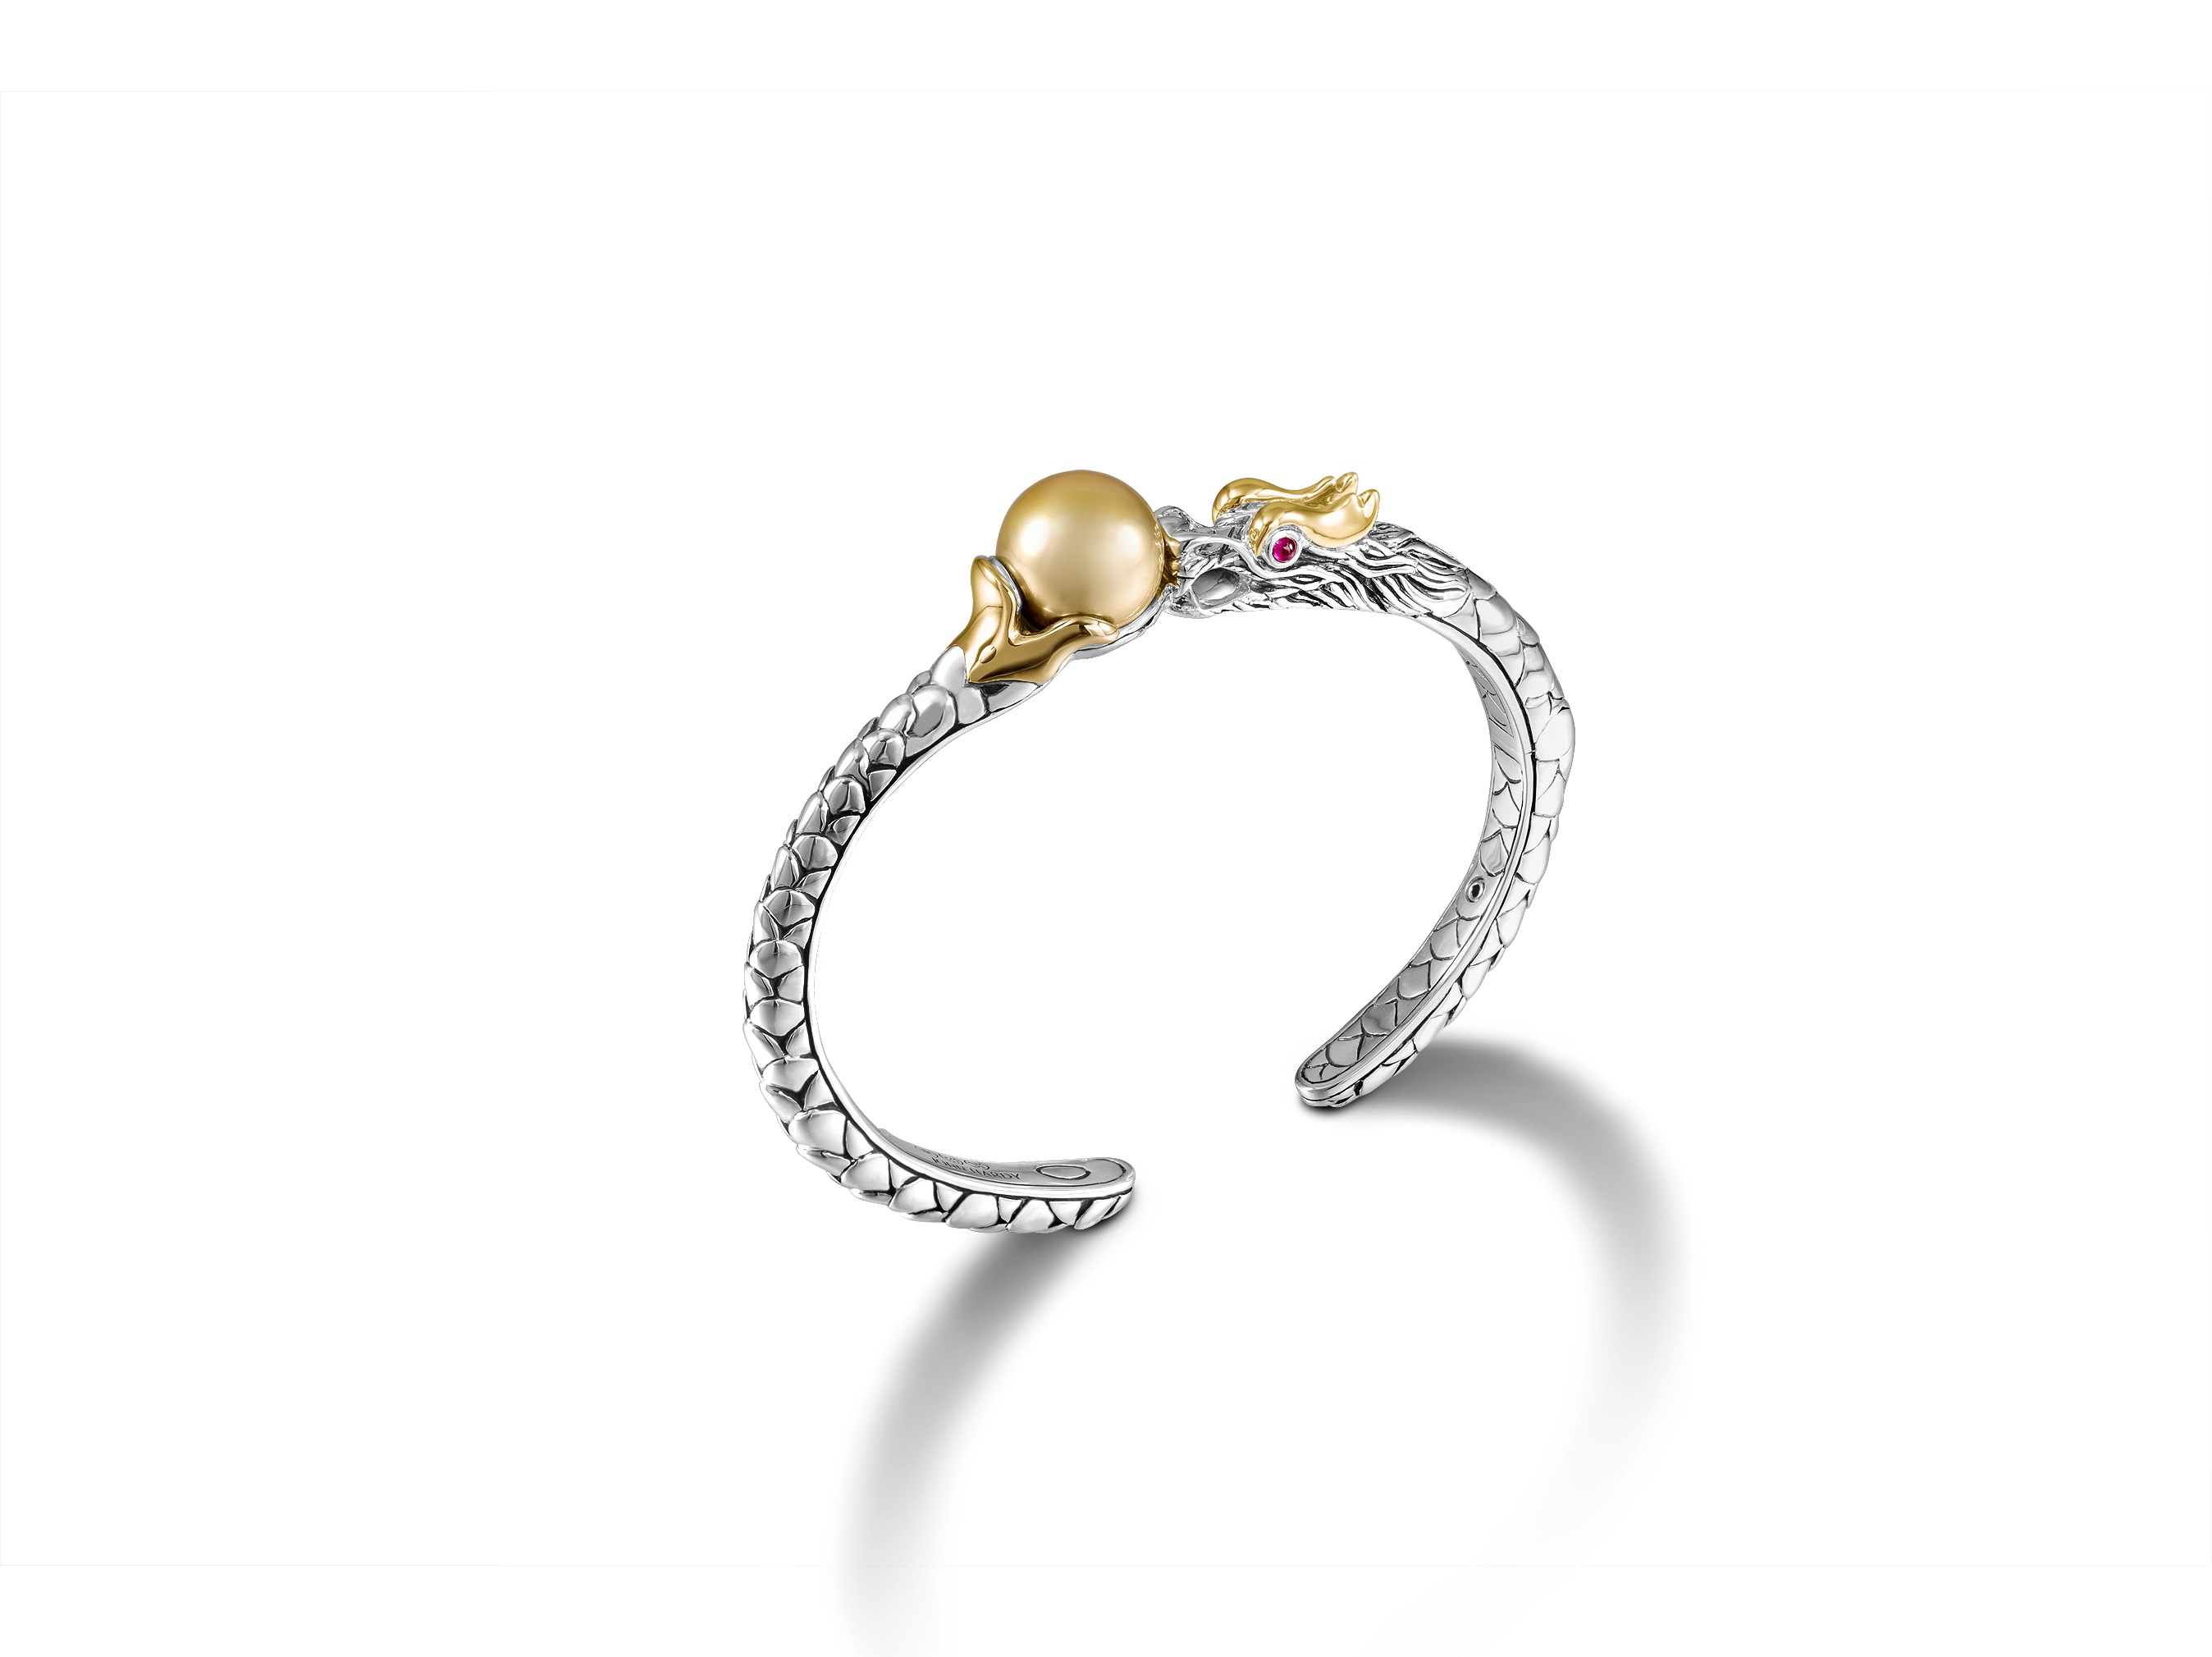 A piece from the new Naga Collection featuring a golden pearl from Lombok.